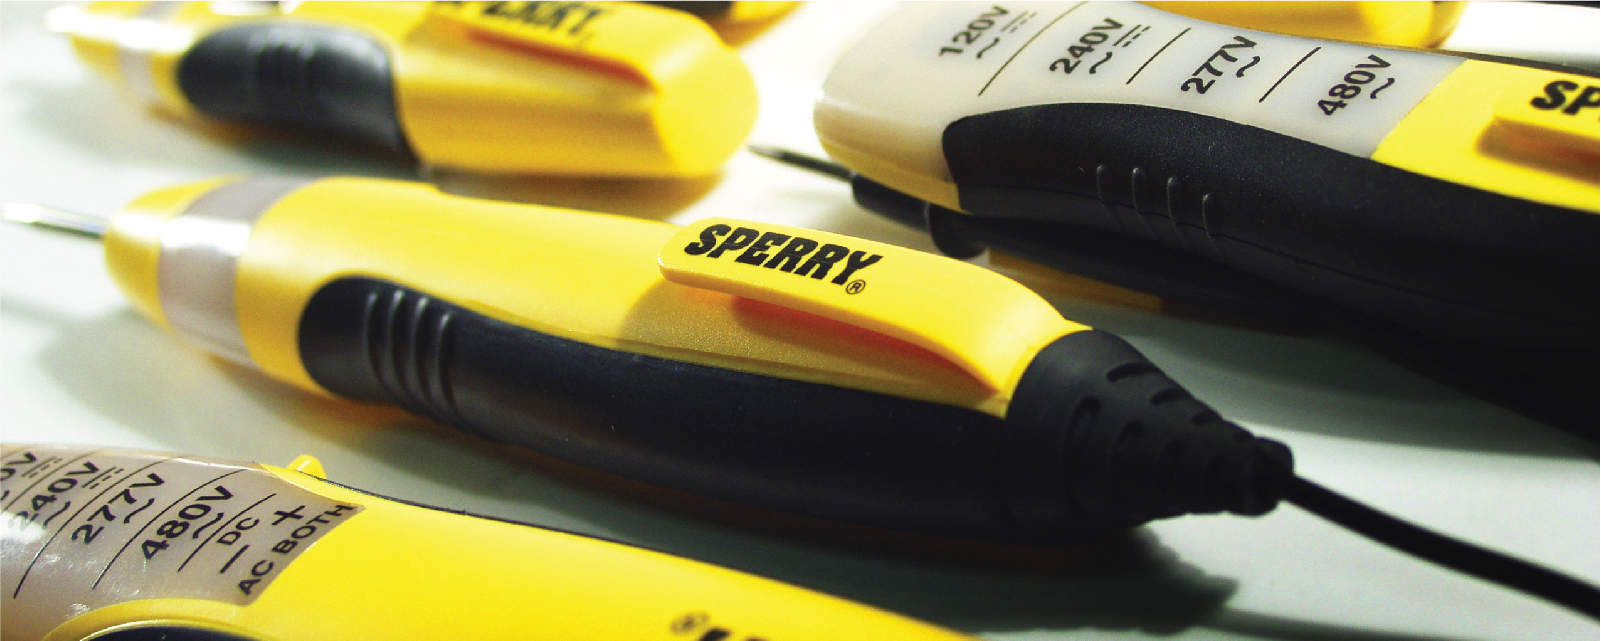 sperry electrician tools banner.jpg